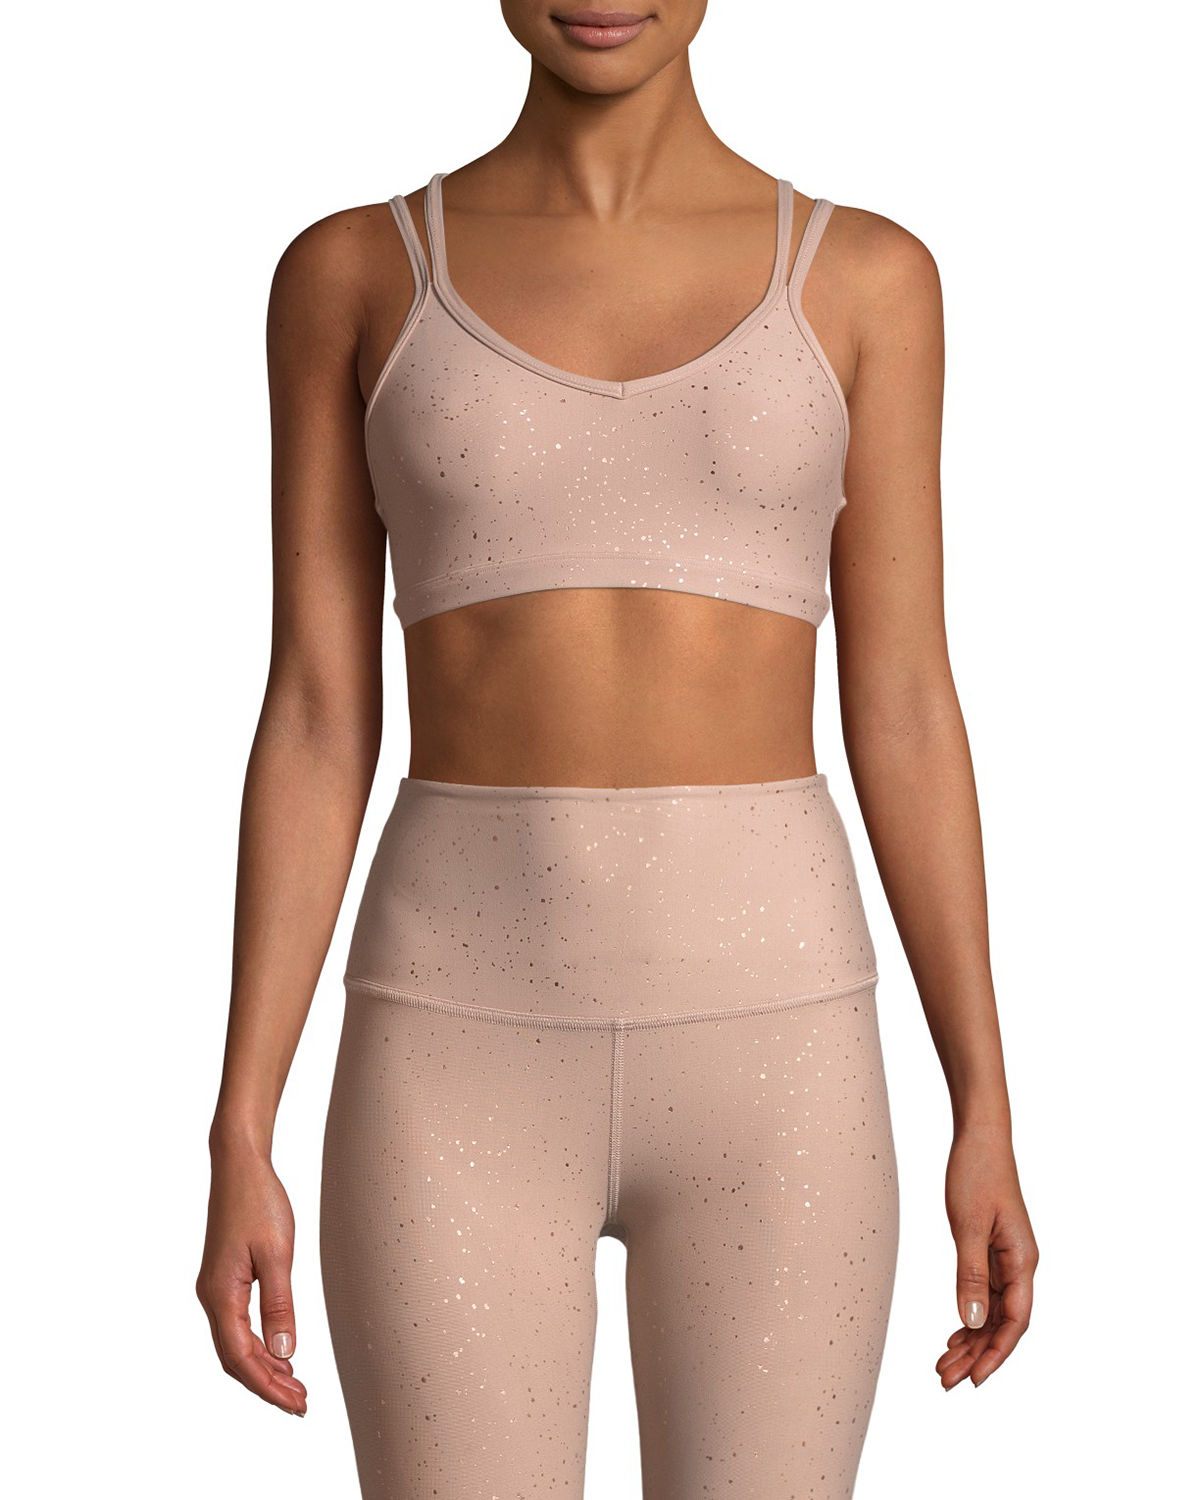 Beyond Yoga Tops DOUBLE BACK ALLOY-SPECKLED SPORTS BRA